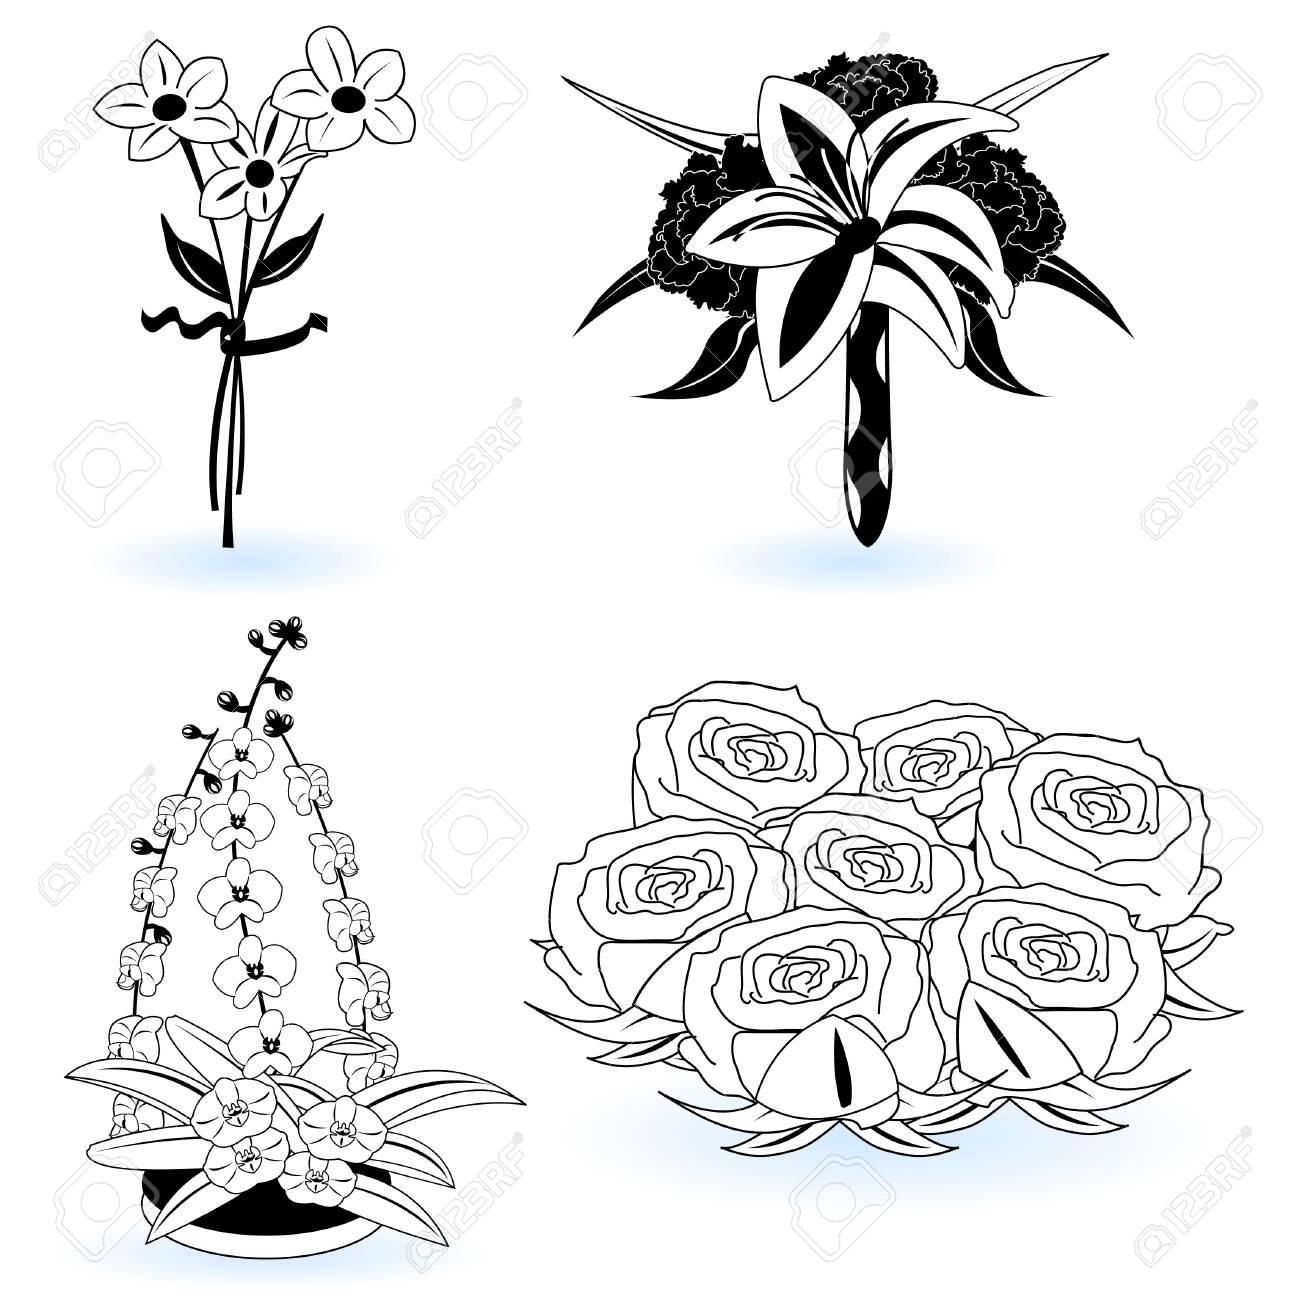 A collection of black and white different flower illustrations, part 4 Stock Vector - 9200038